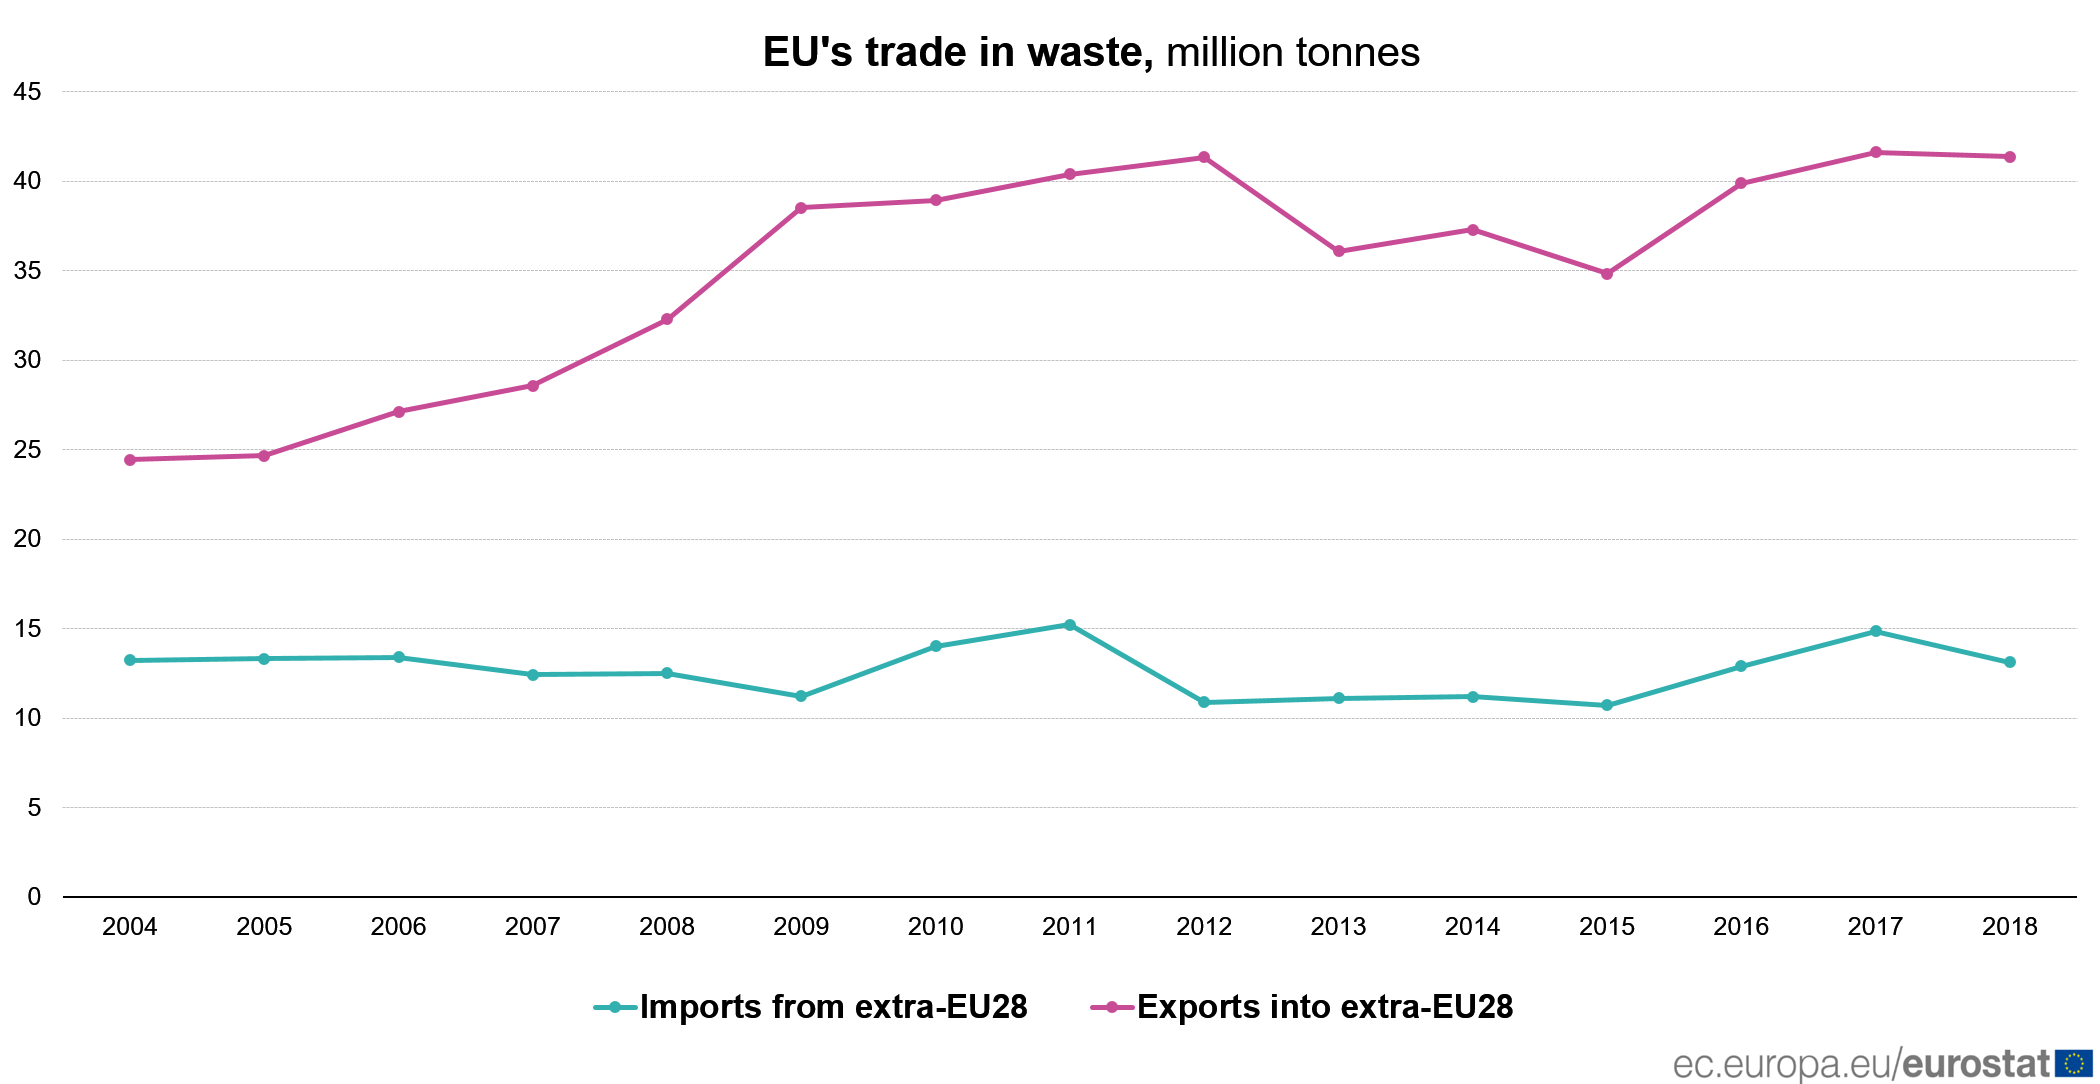 EU's trade in waste, million tonnes (2004-2018)